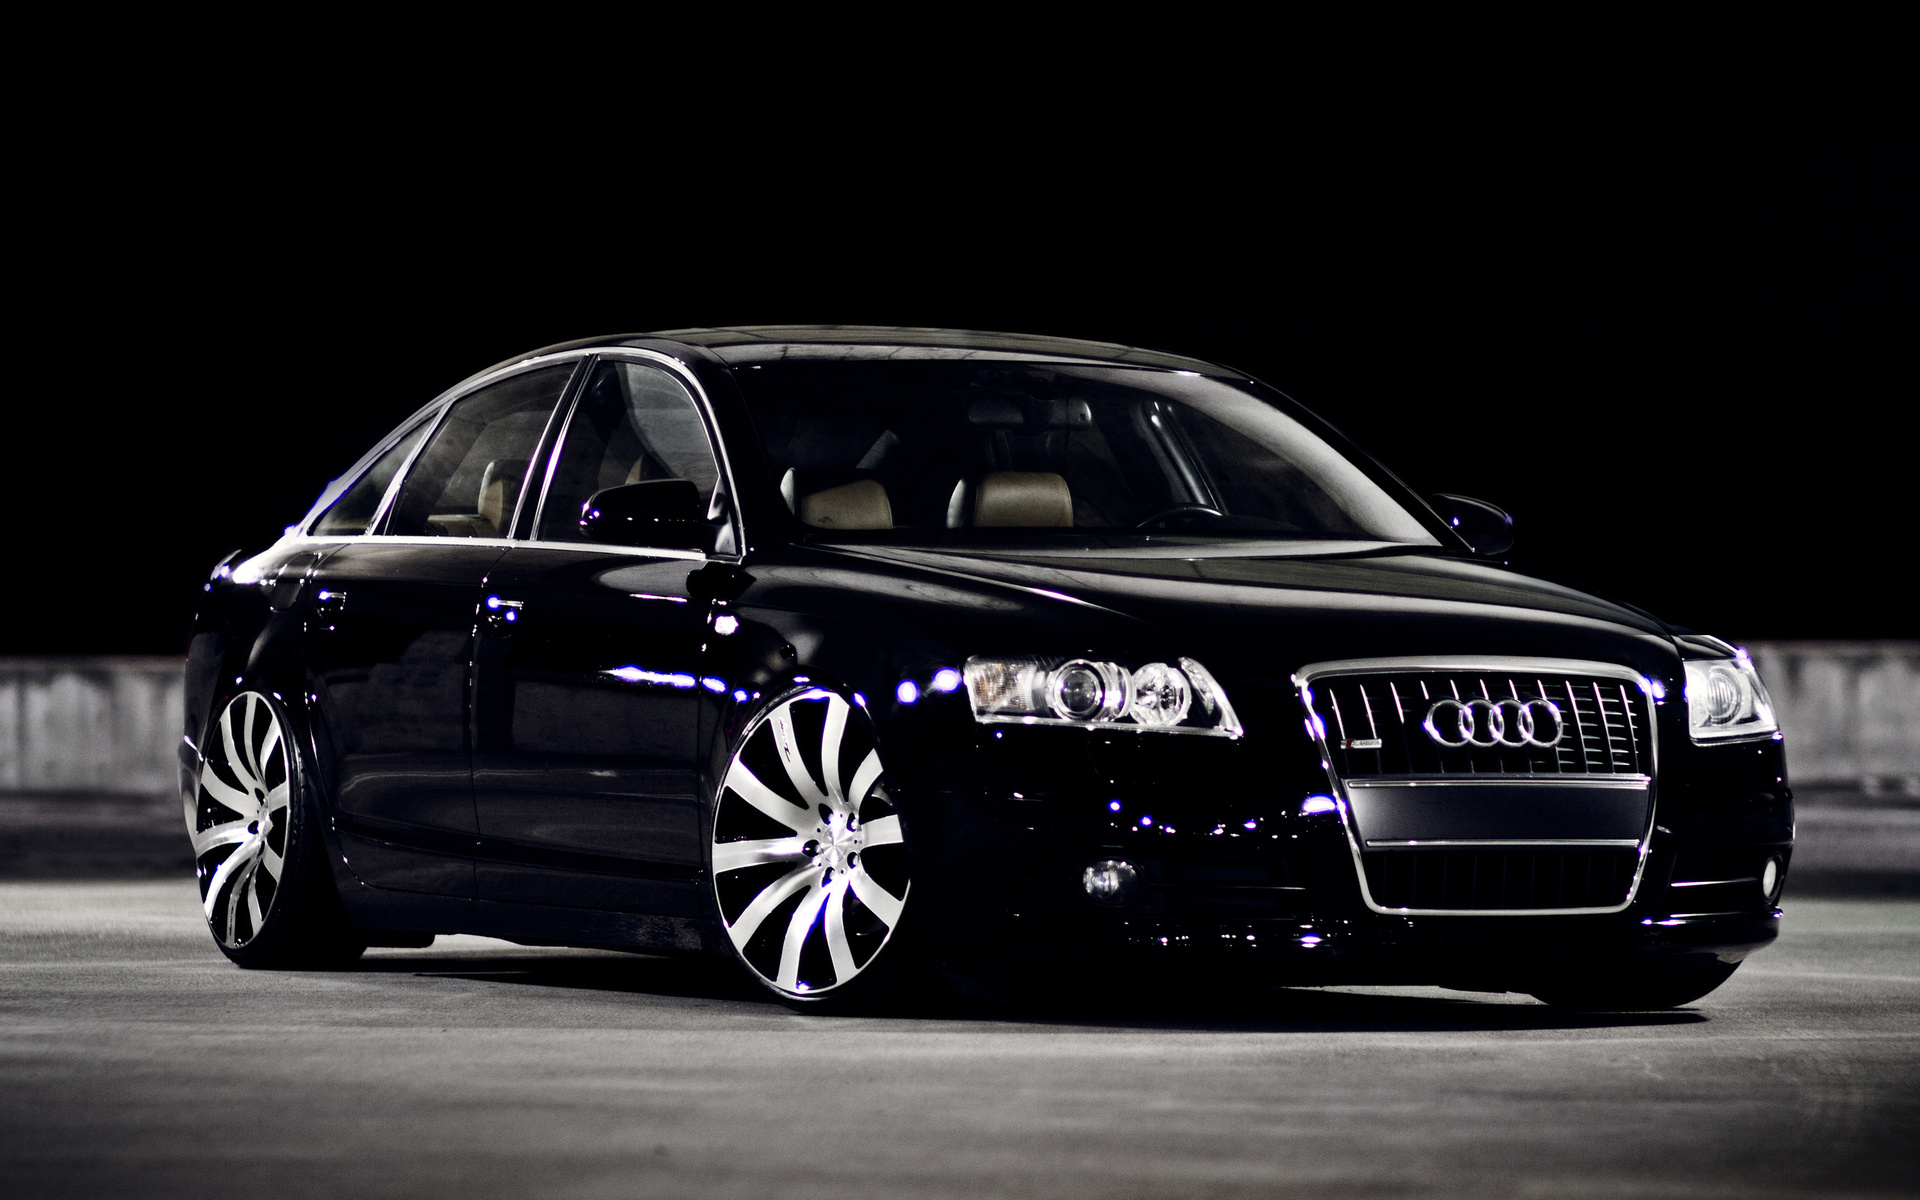 Black Audi Cars Wallpapers Amazing Wallpapers